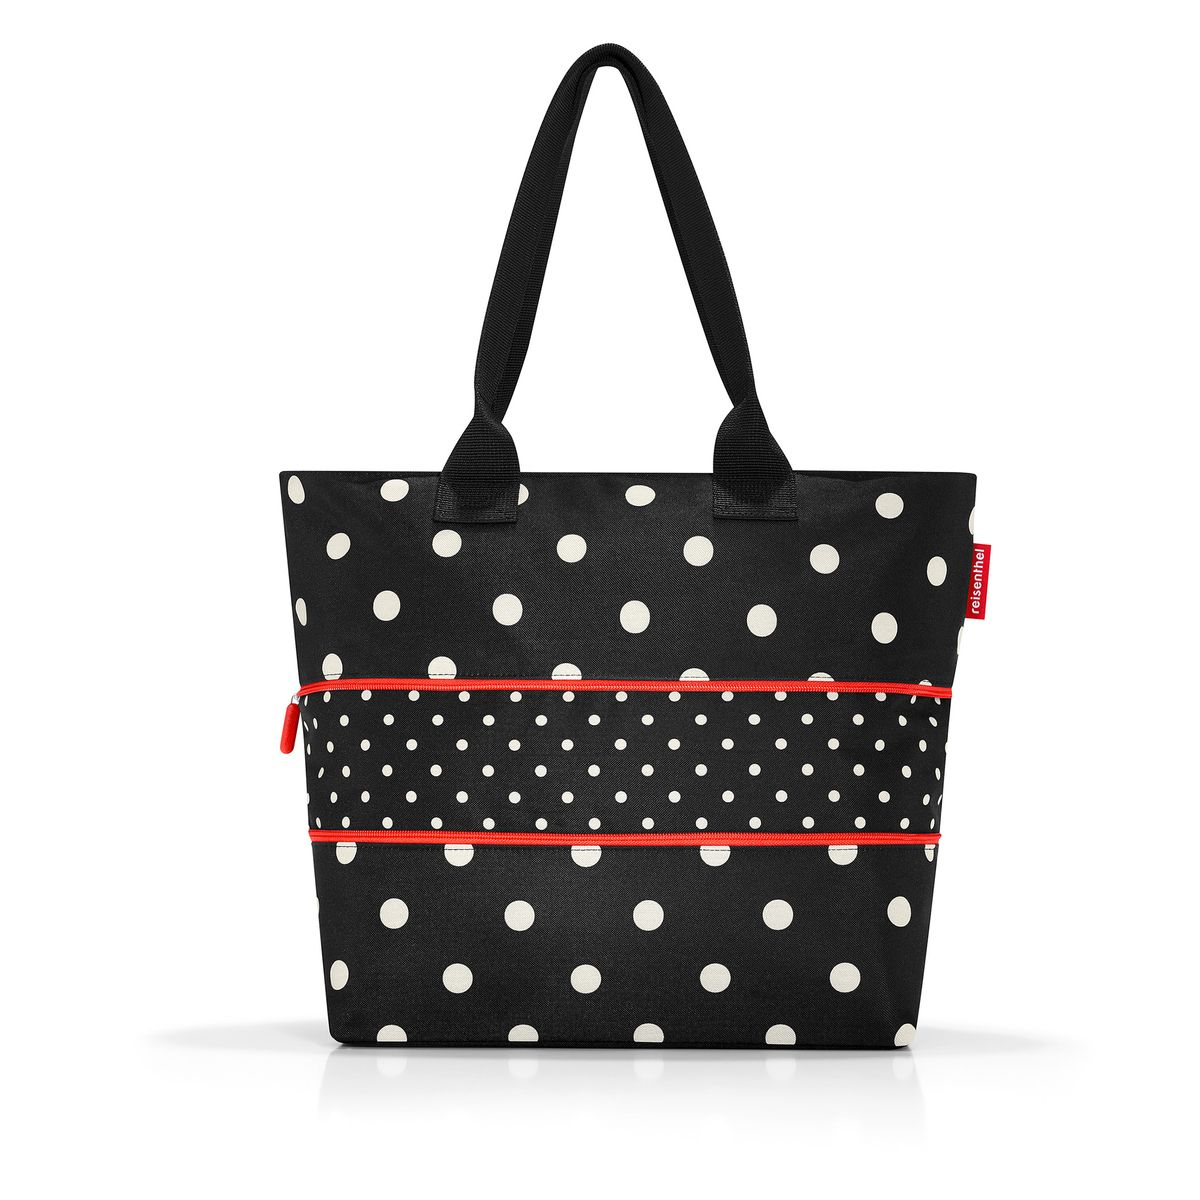 Sac shopper extensible Mixed Dots - Reisenthel